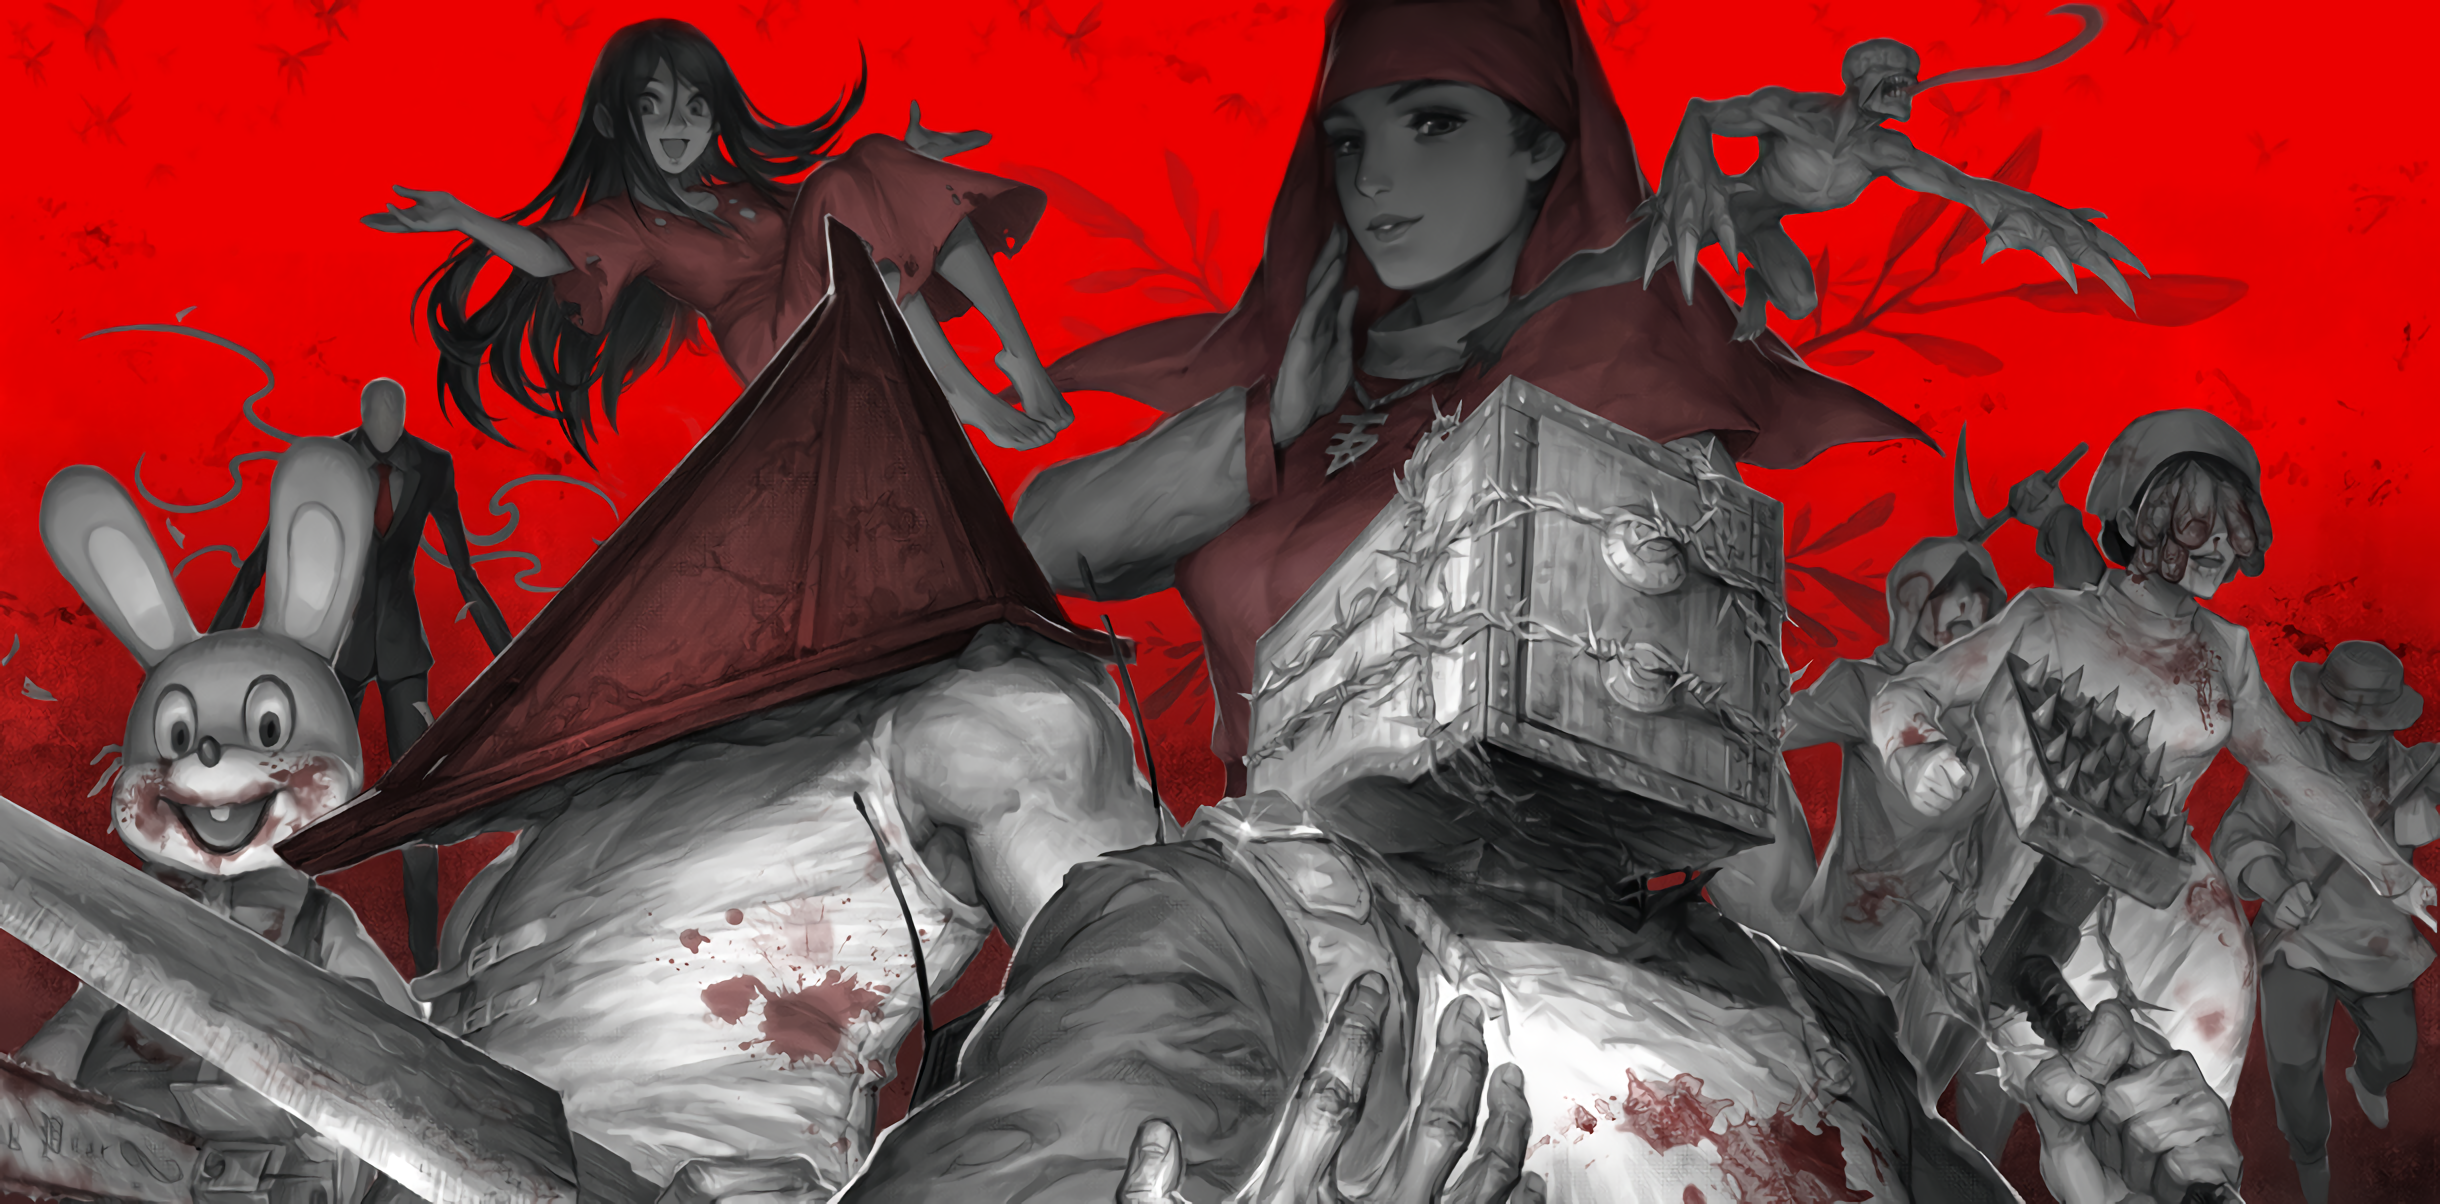 Blood Corpse Party Creepypasta Pyramid Head Red Resident